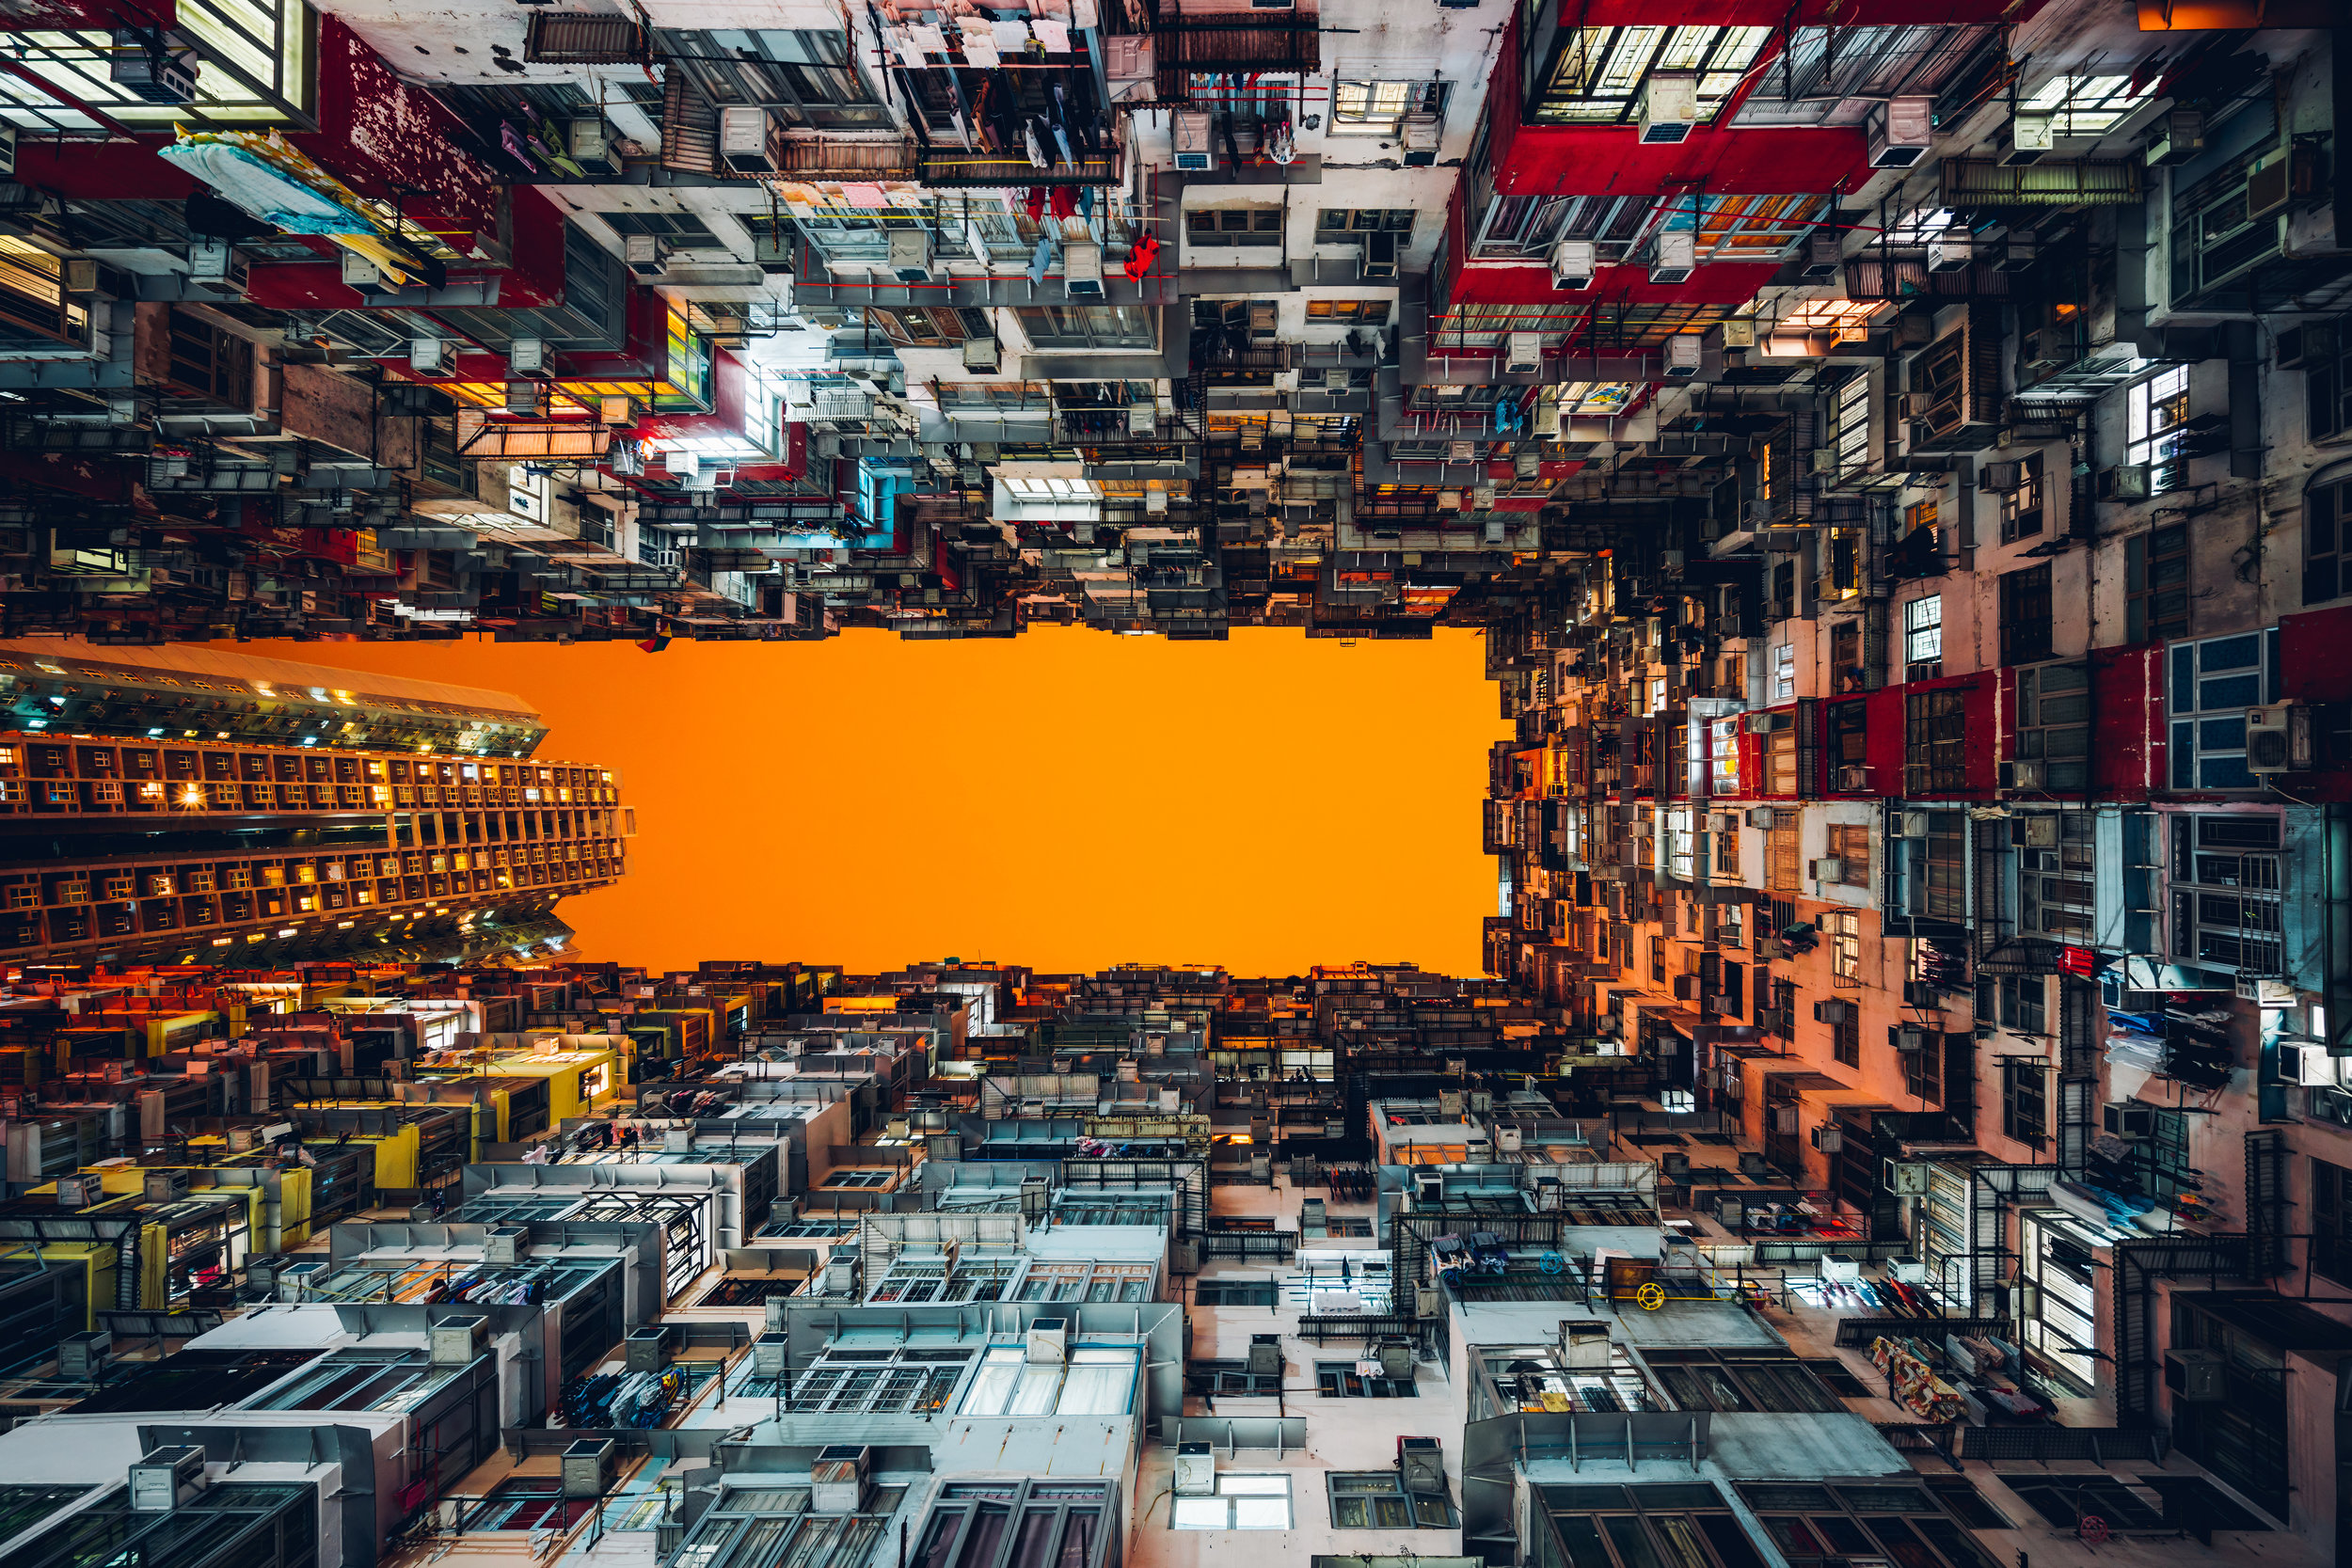 Hong Kong - I travel to Hong Kong quite a bit for work. The density of the city is unparalleled here, there beautiful mountains all around and the people are simply amazing. It's one of my favorite cities in the world.